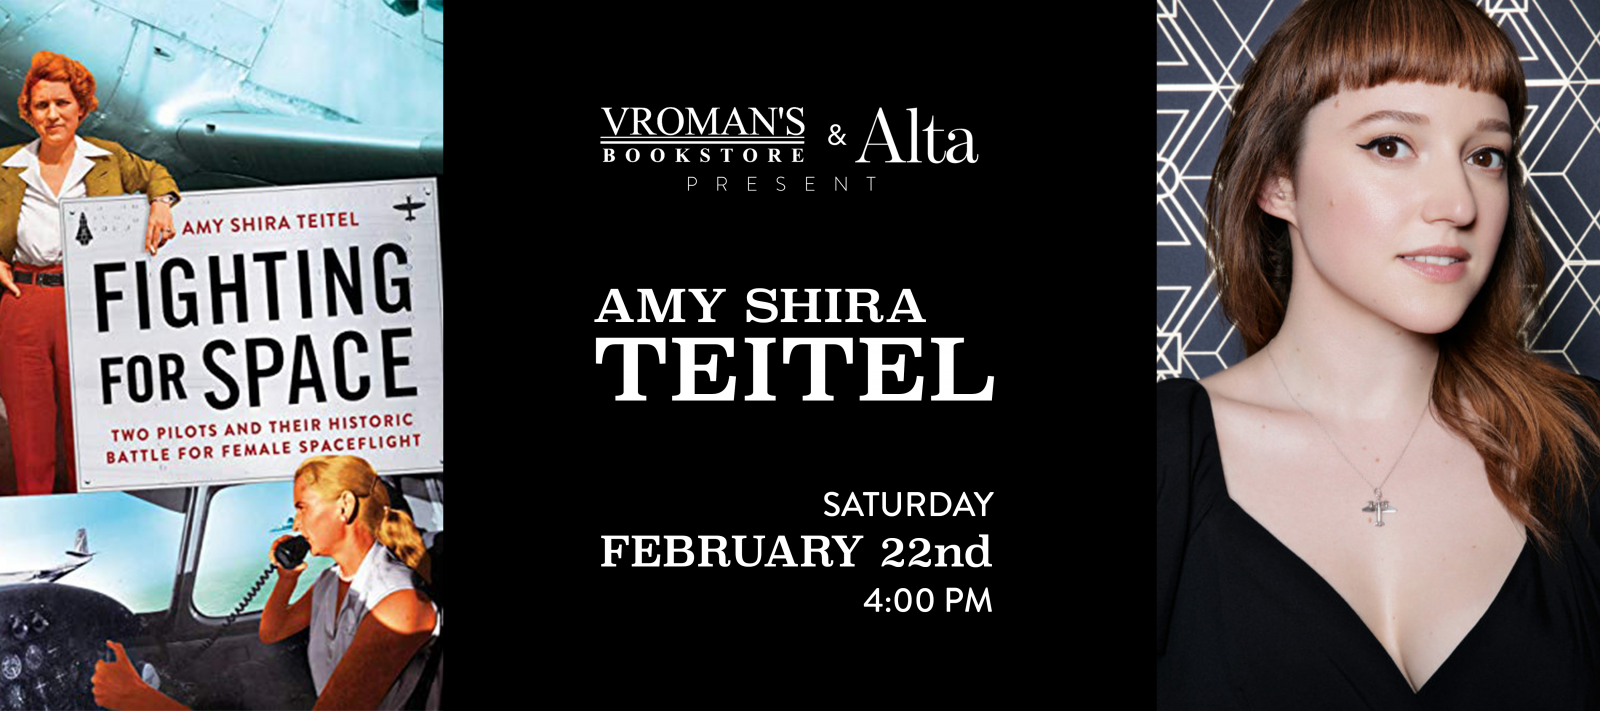 Amy Shira Teitel book signing on Saturday, February 22, at 4pm